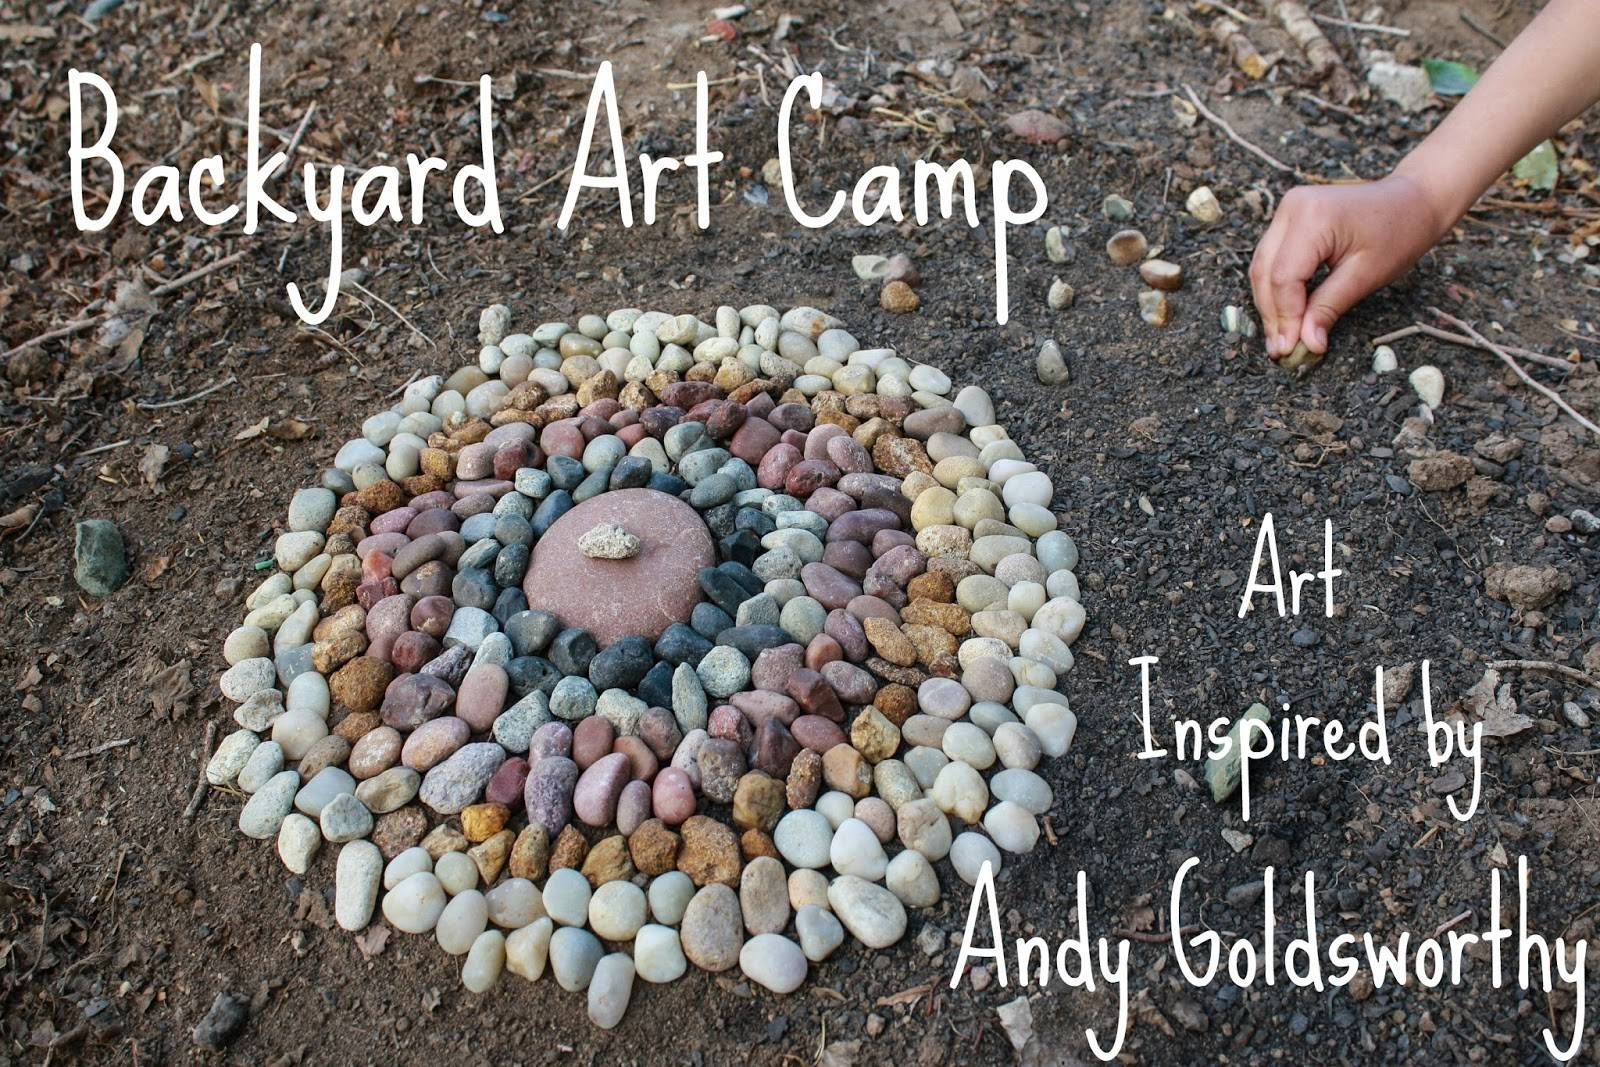 Backyard Art Camp Andy Goldsworthy